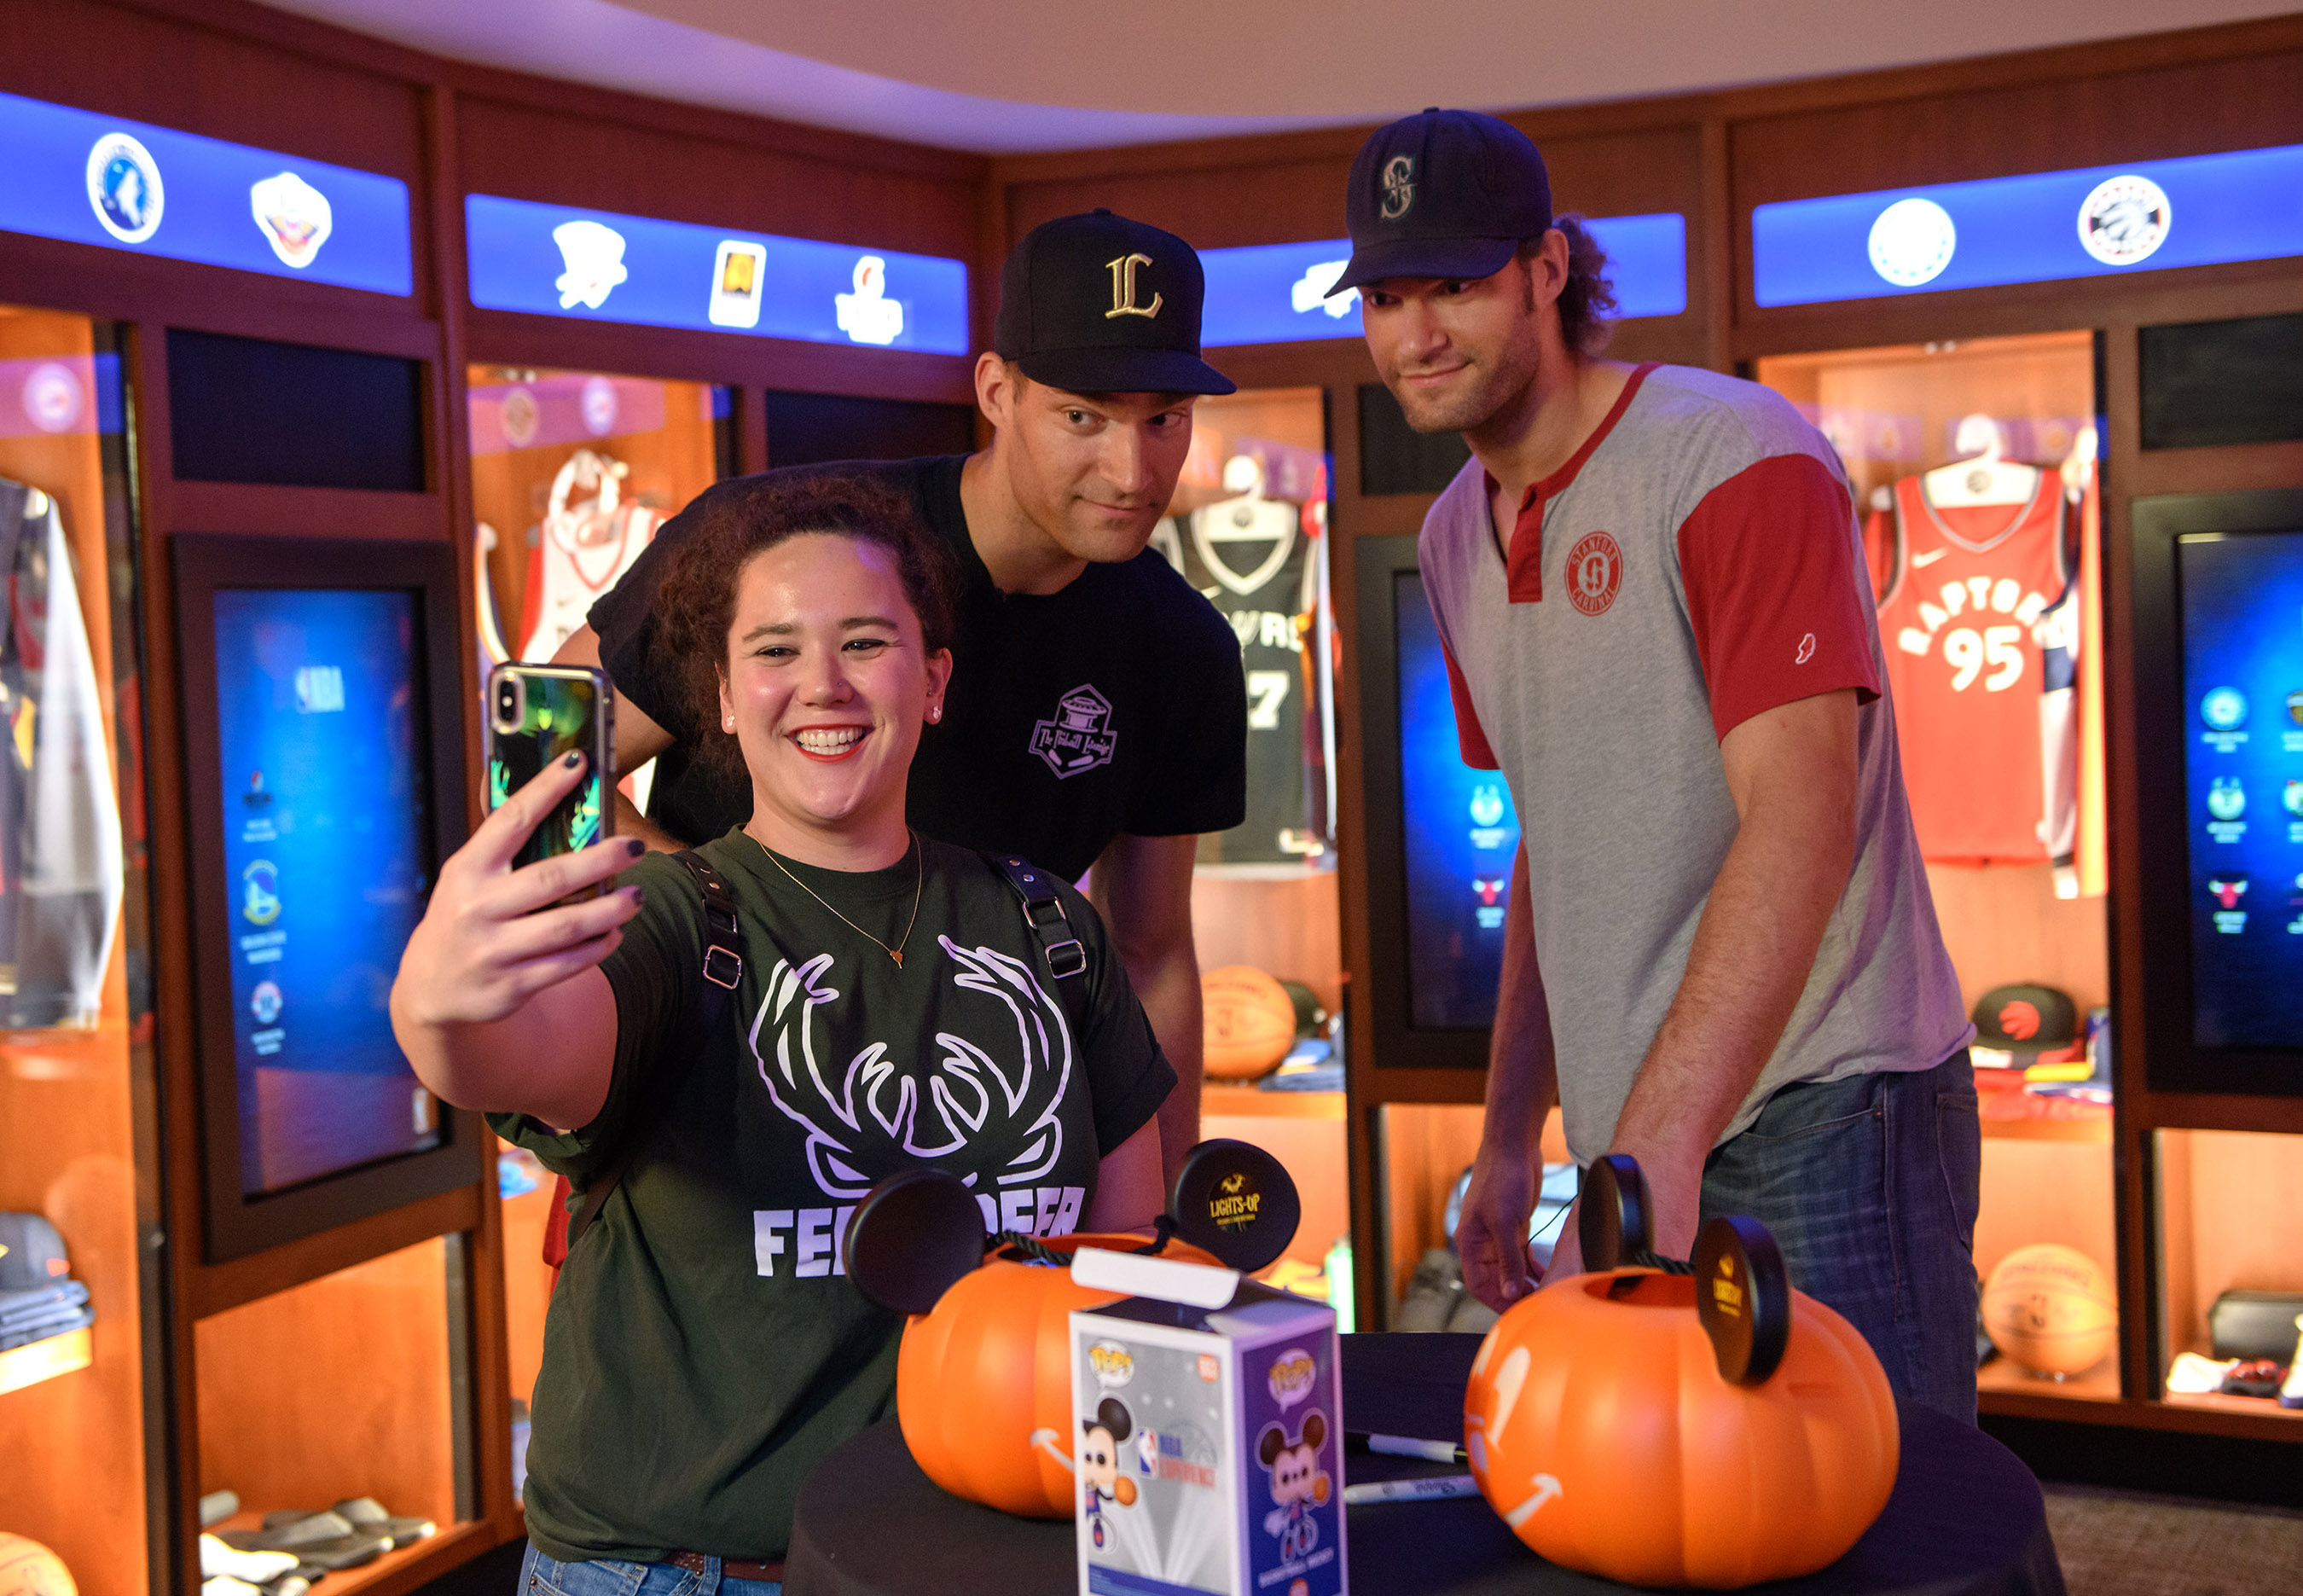 NBA players Brook (center) and Robin (right) Lopez take a break from their schedule to celebrate Halloween with guests at NBA Experience, Oct. 31, 2019, at Disney Springs at Walt Disney World Resort in Lake Buena Vista, Fla. The twin brothers spent time with fans and participated in some of the 13 interactive and hands-on activities inside the first-of-its-kind destination. (Todd Anderson, photographer)